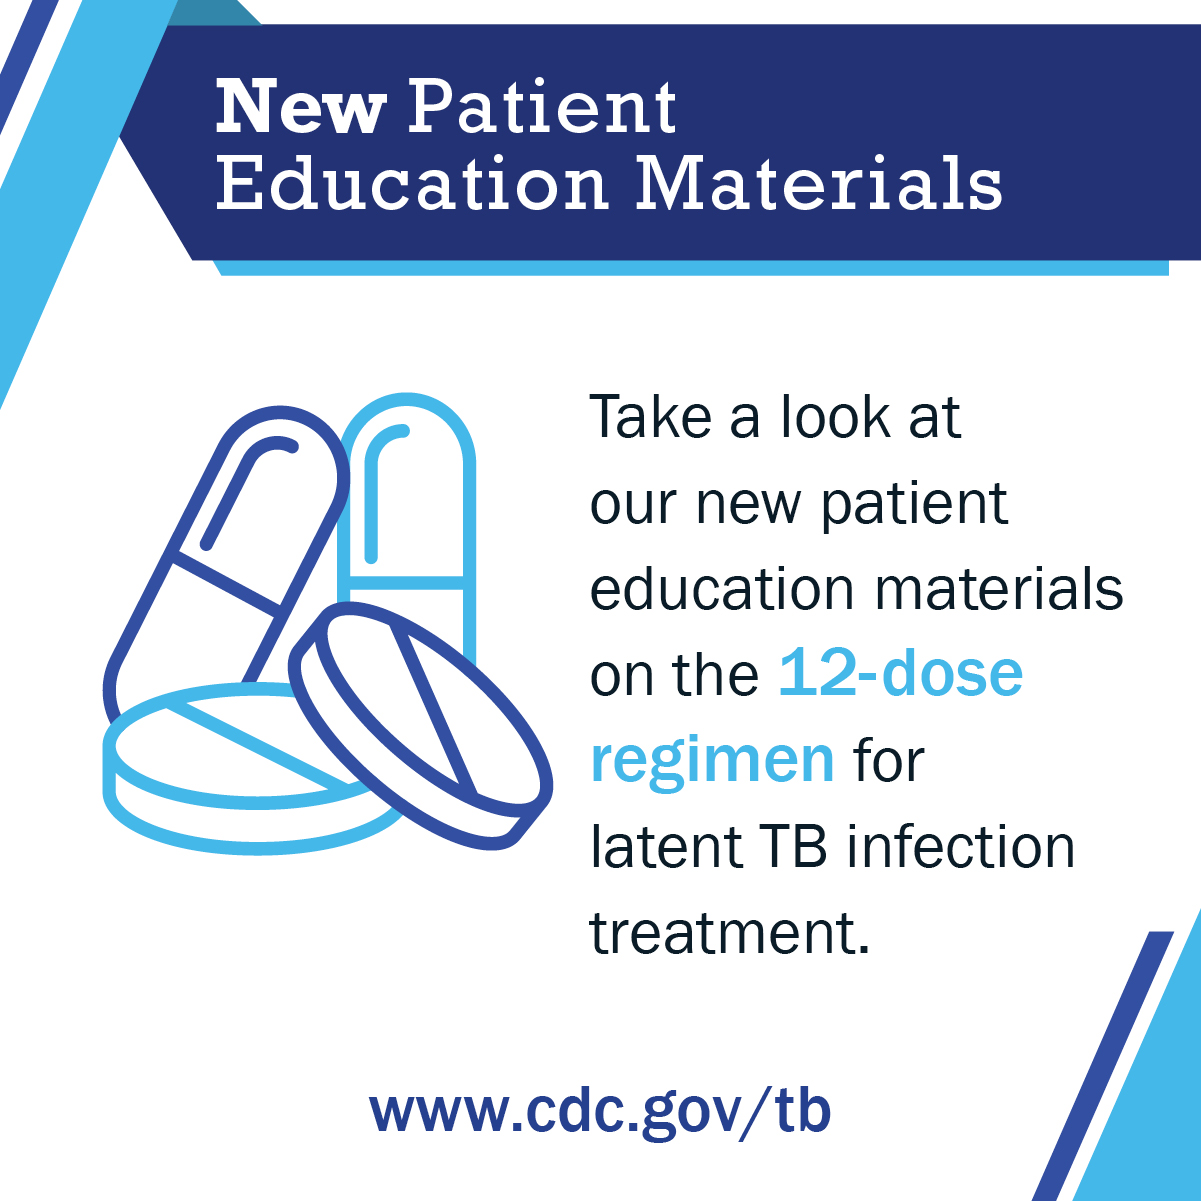 New Patient Education Materials